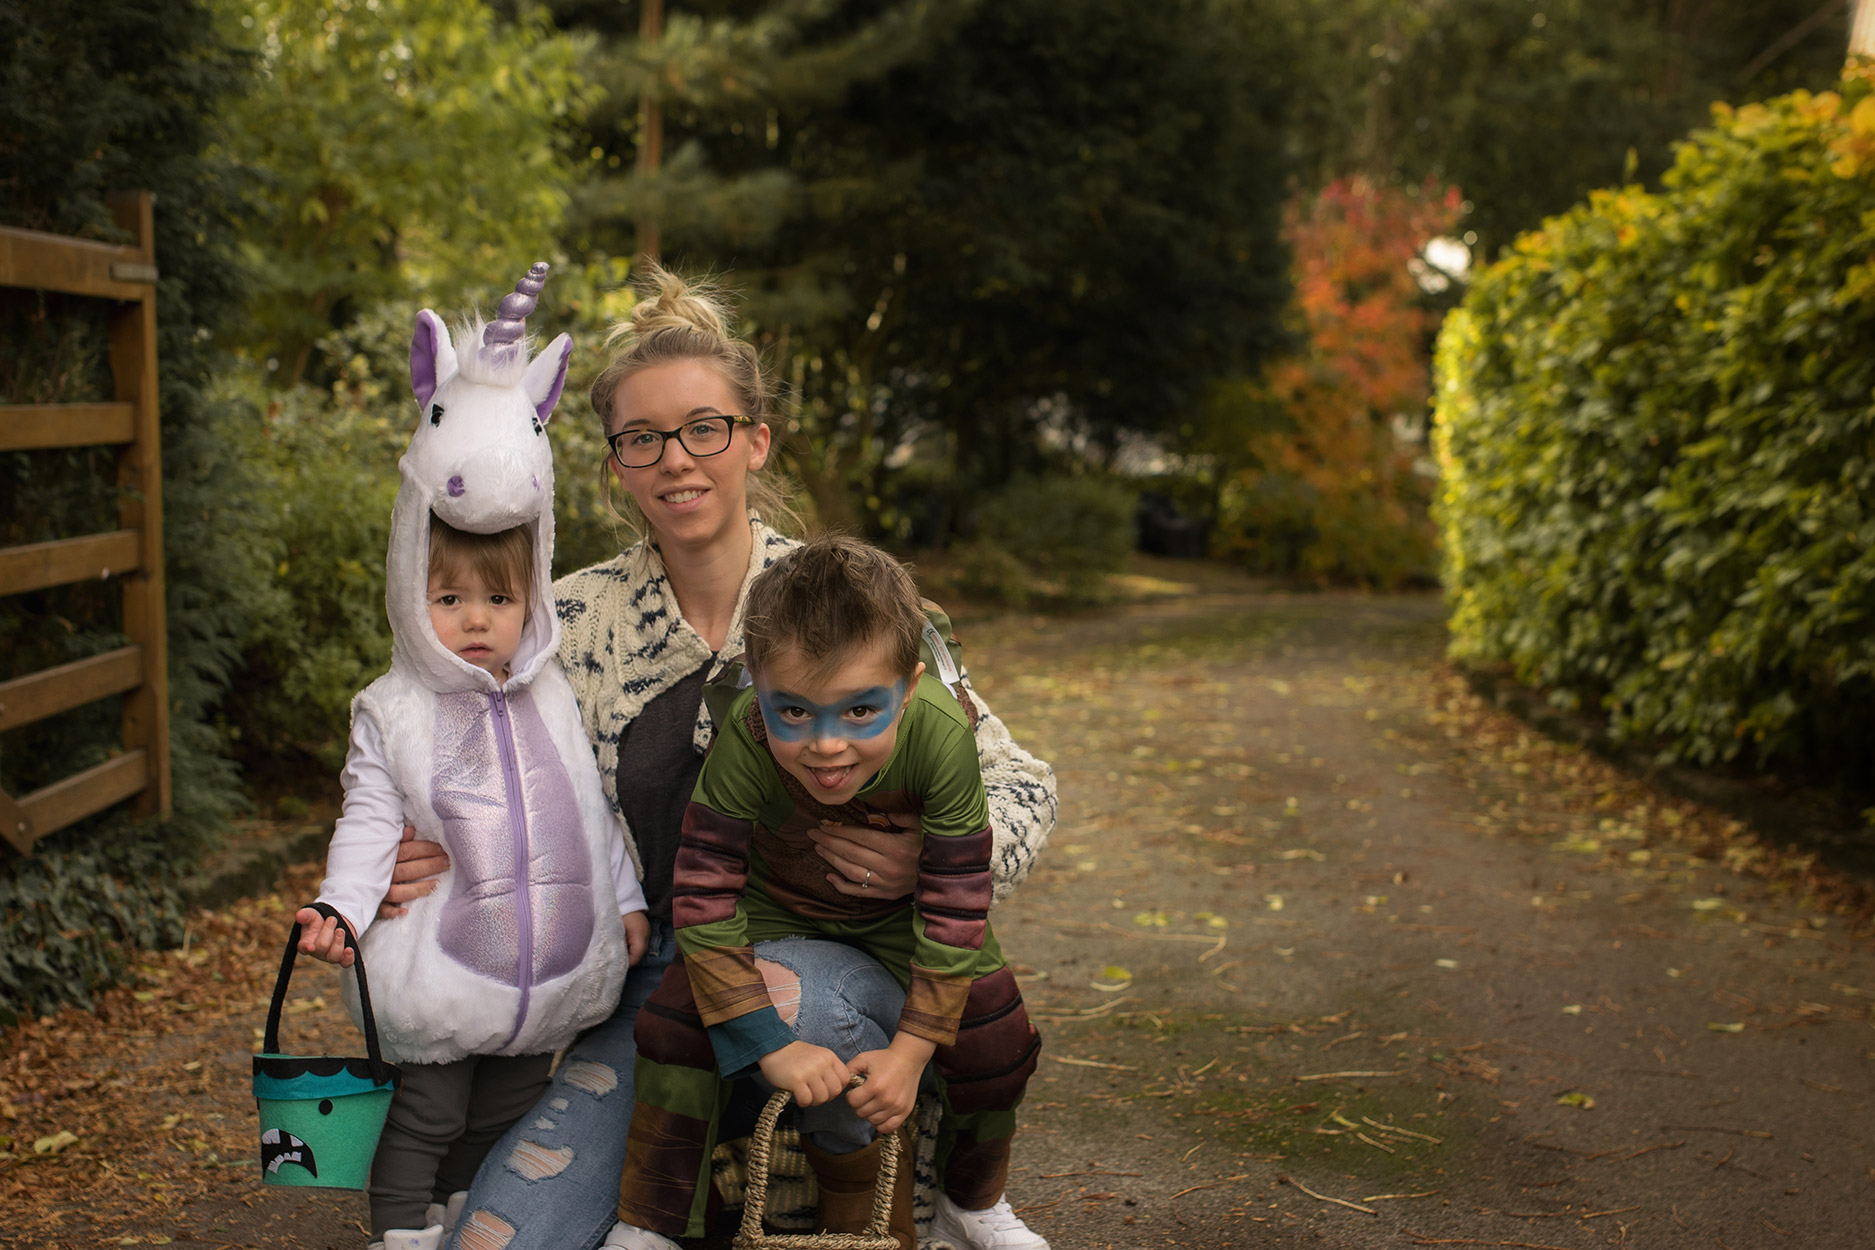 Trick or treating at Nanny's cottage wearing unicorn costume and Ninja Turtle outfit, two brothers with Mummy and Nanny